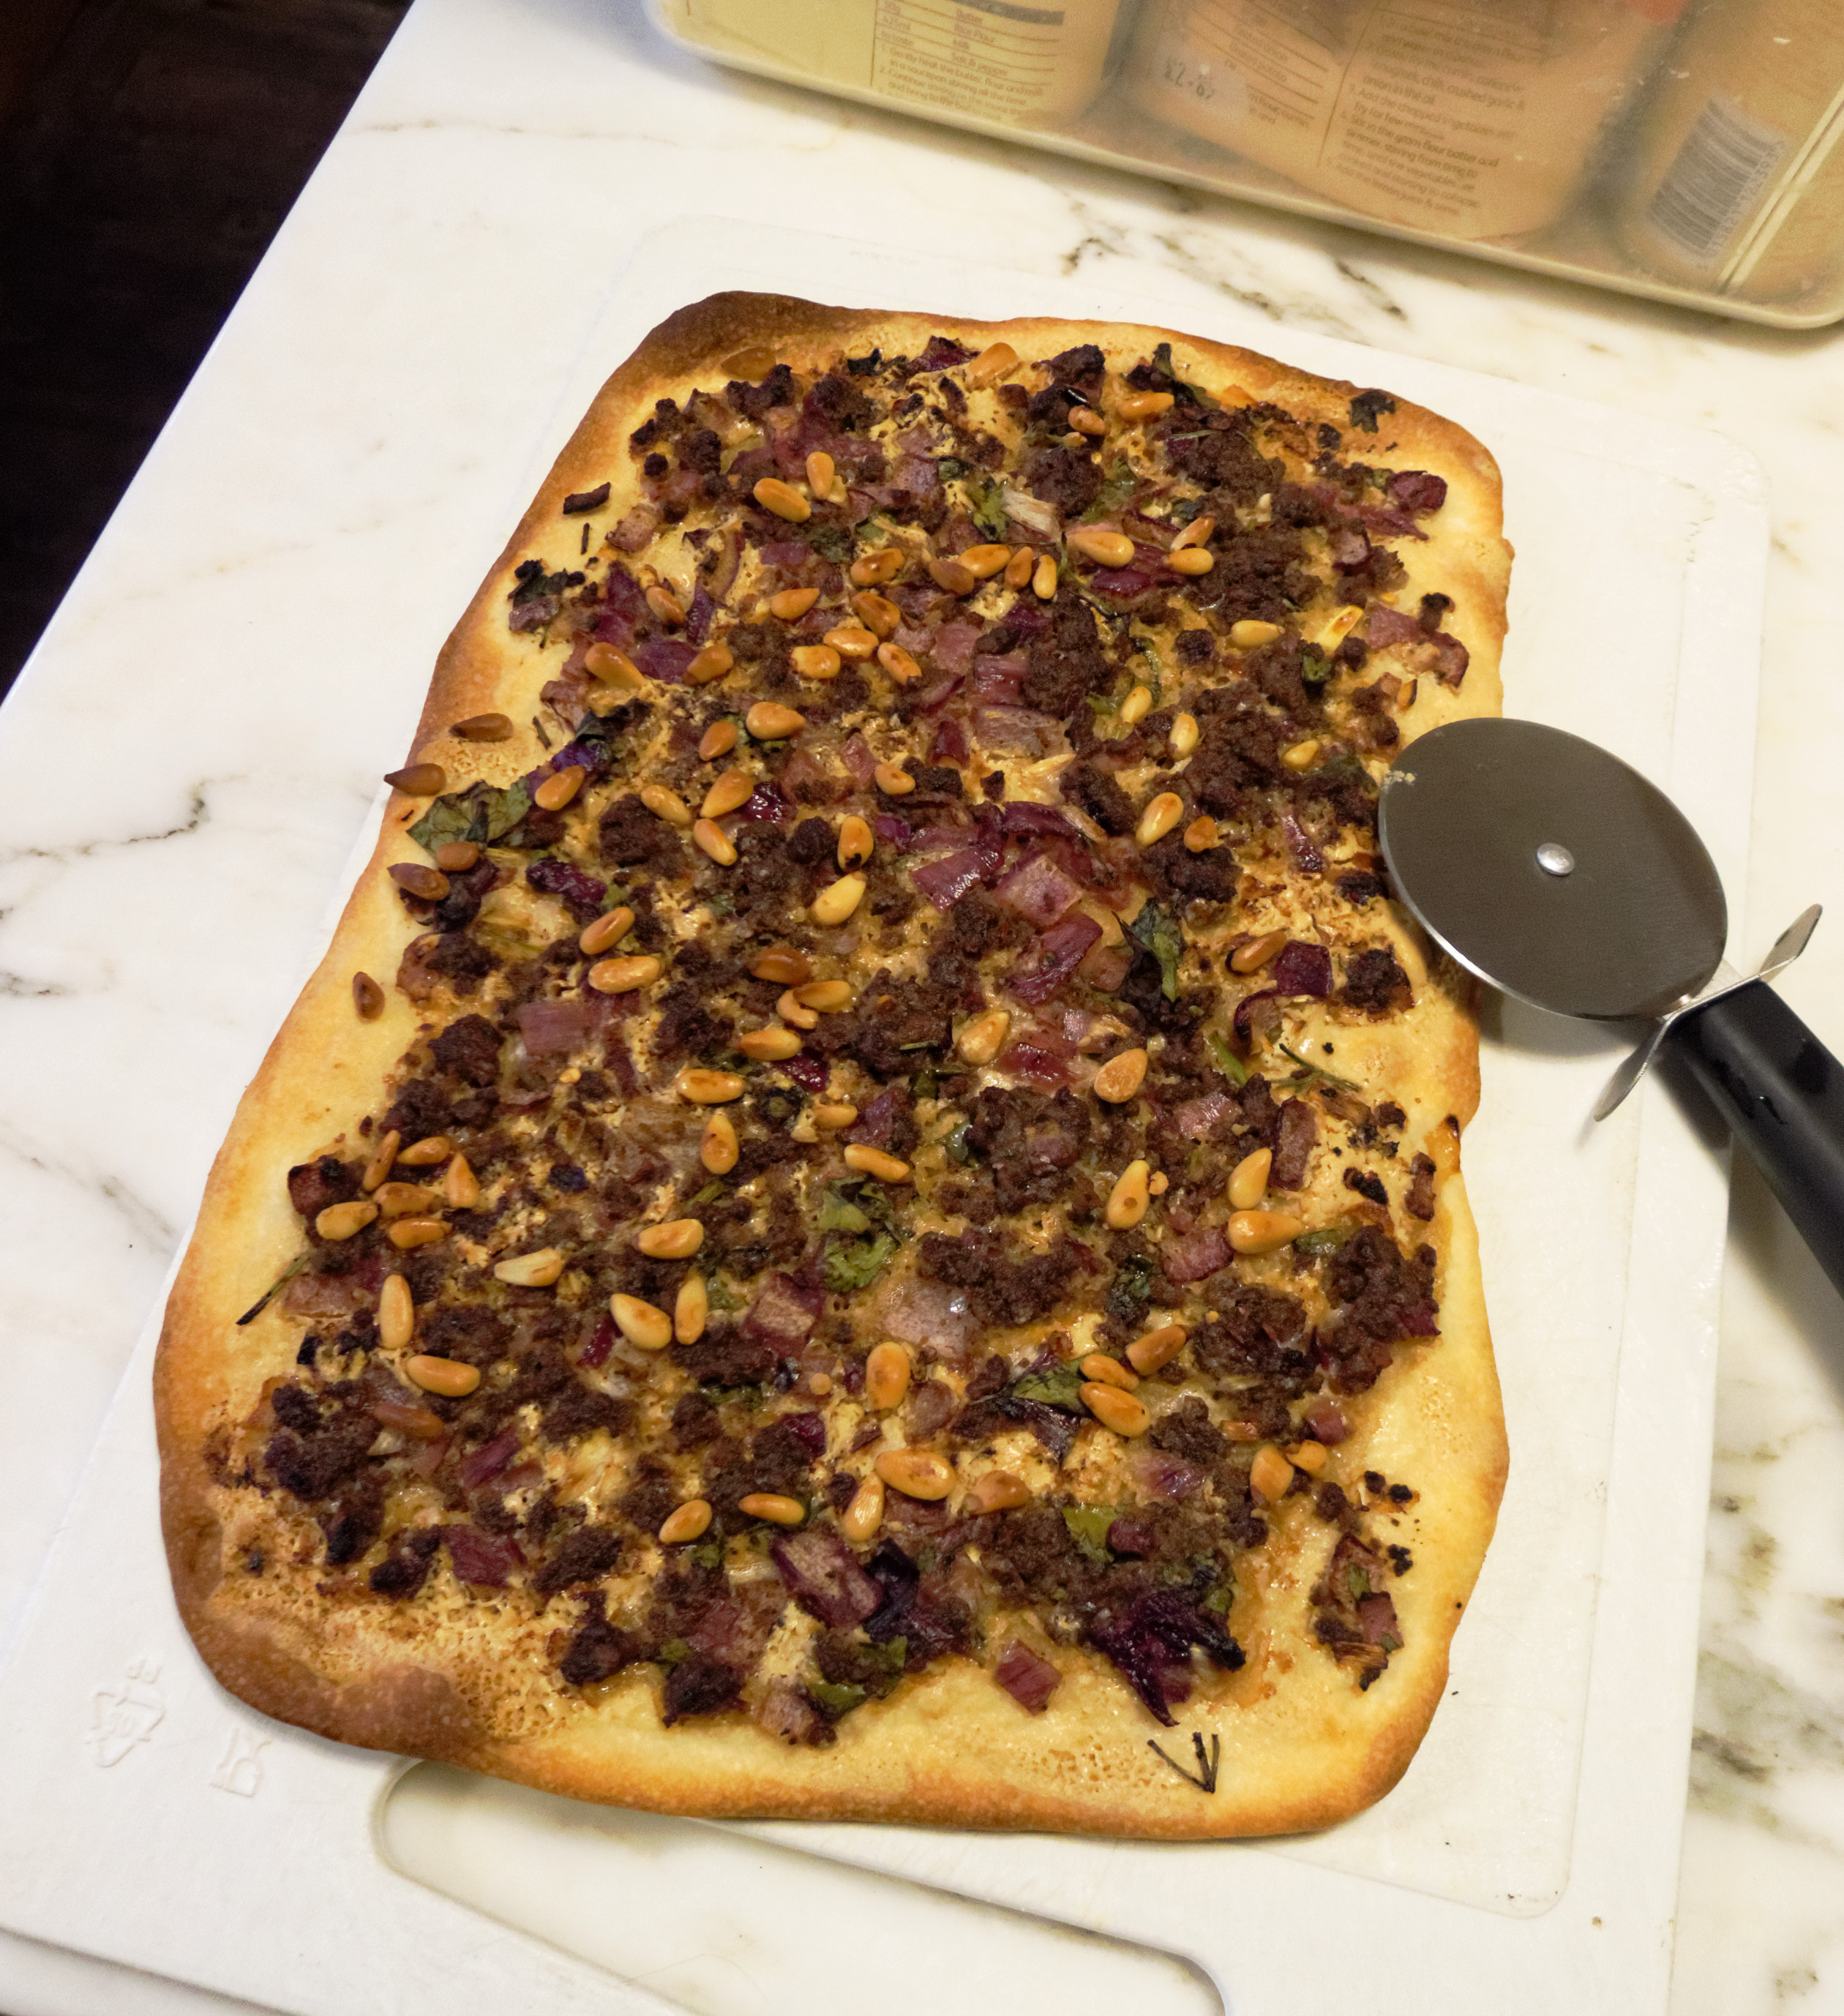 Turkish-style pizza, with minced lamb, spices, pomegranate molasses, parsley and pine nuts